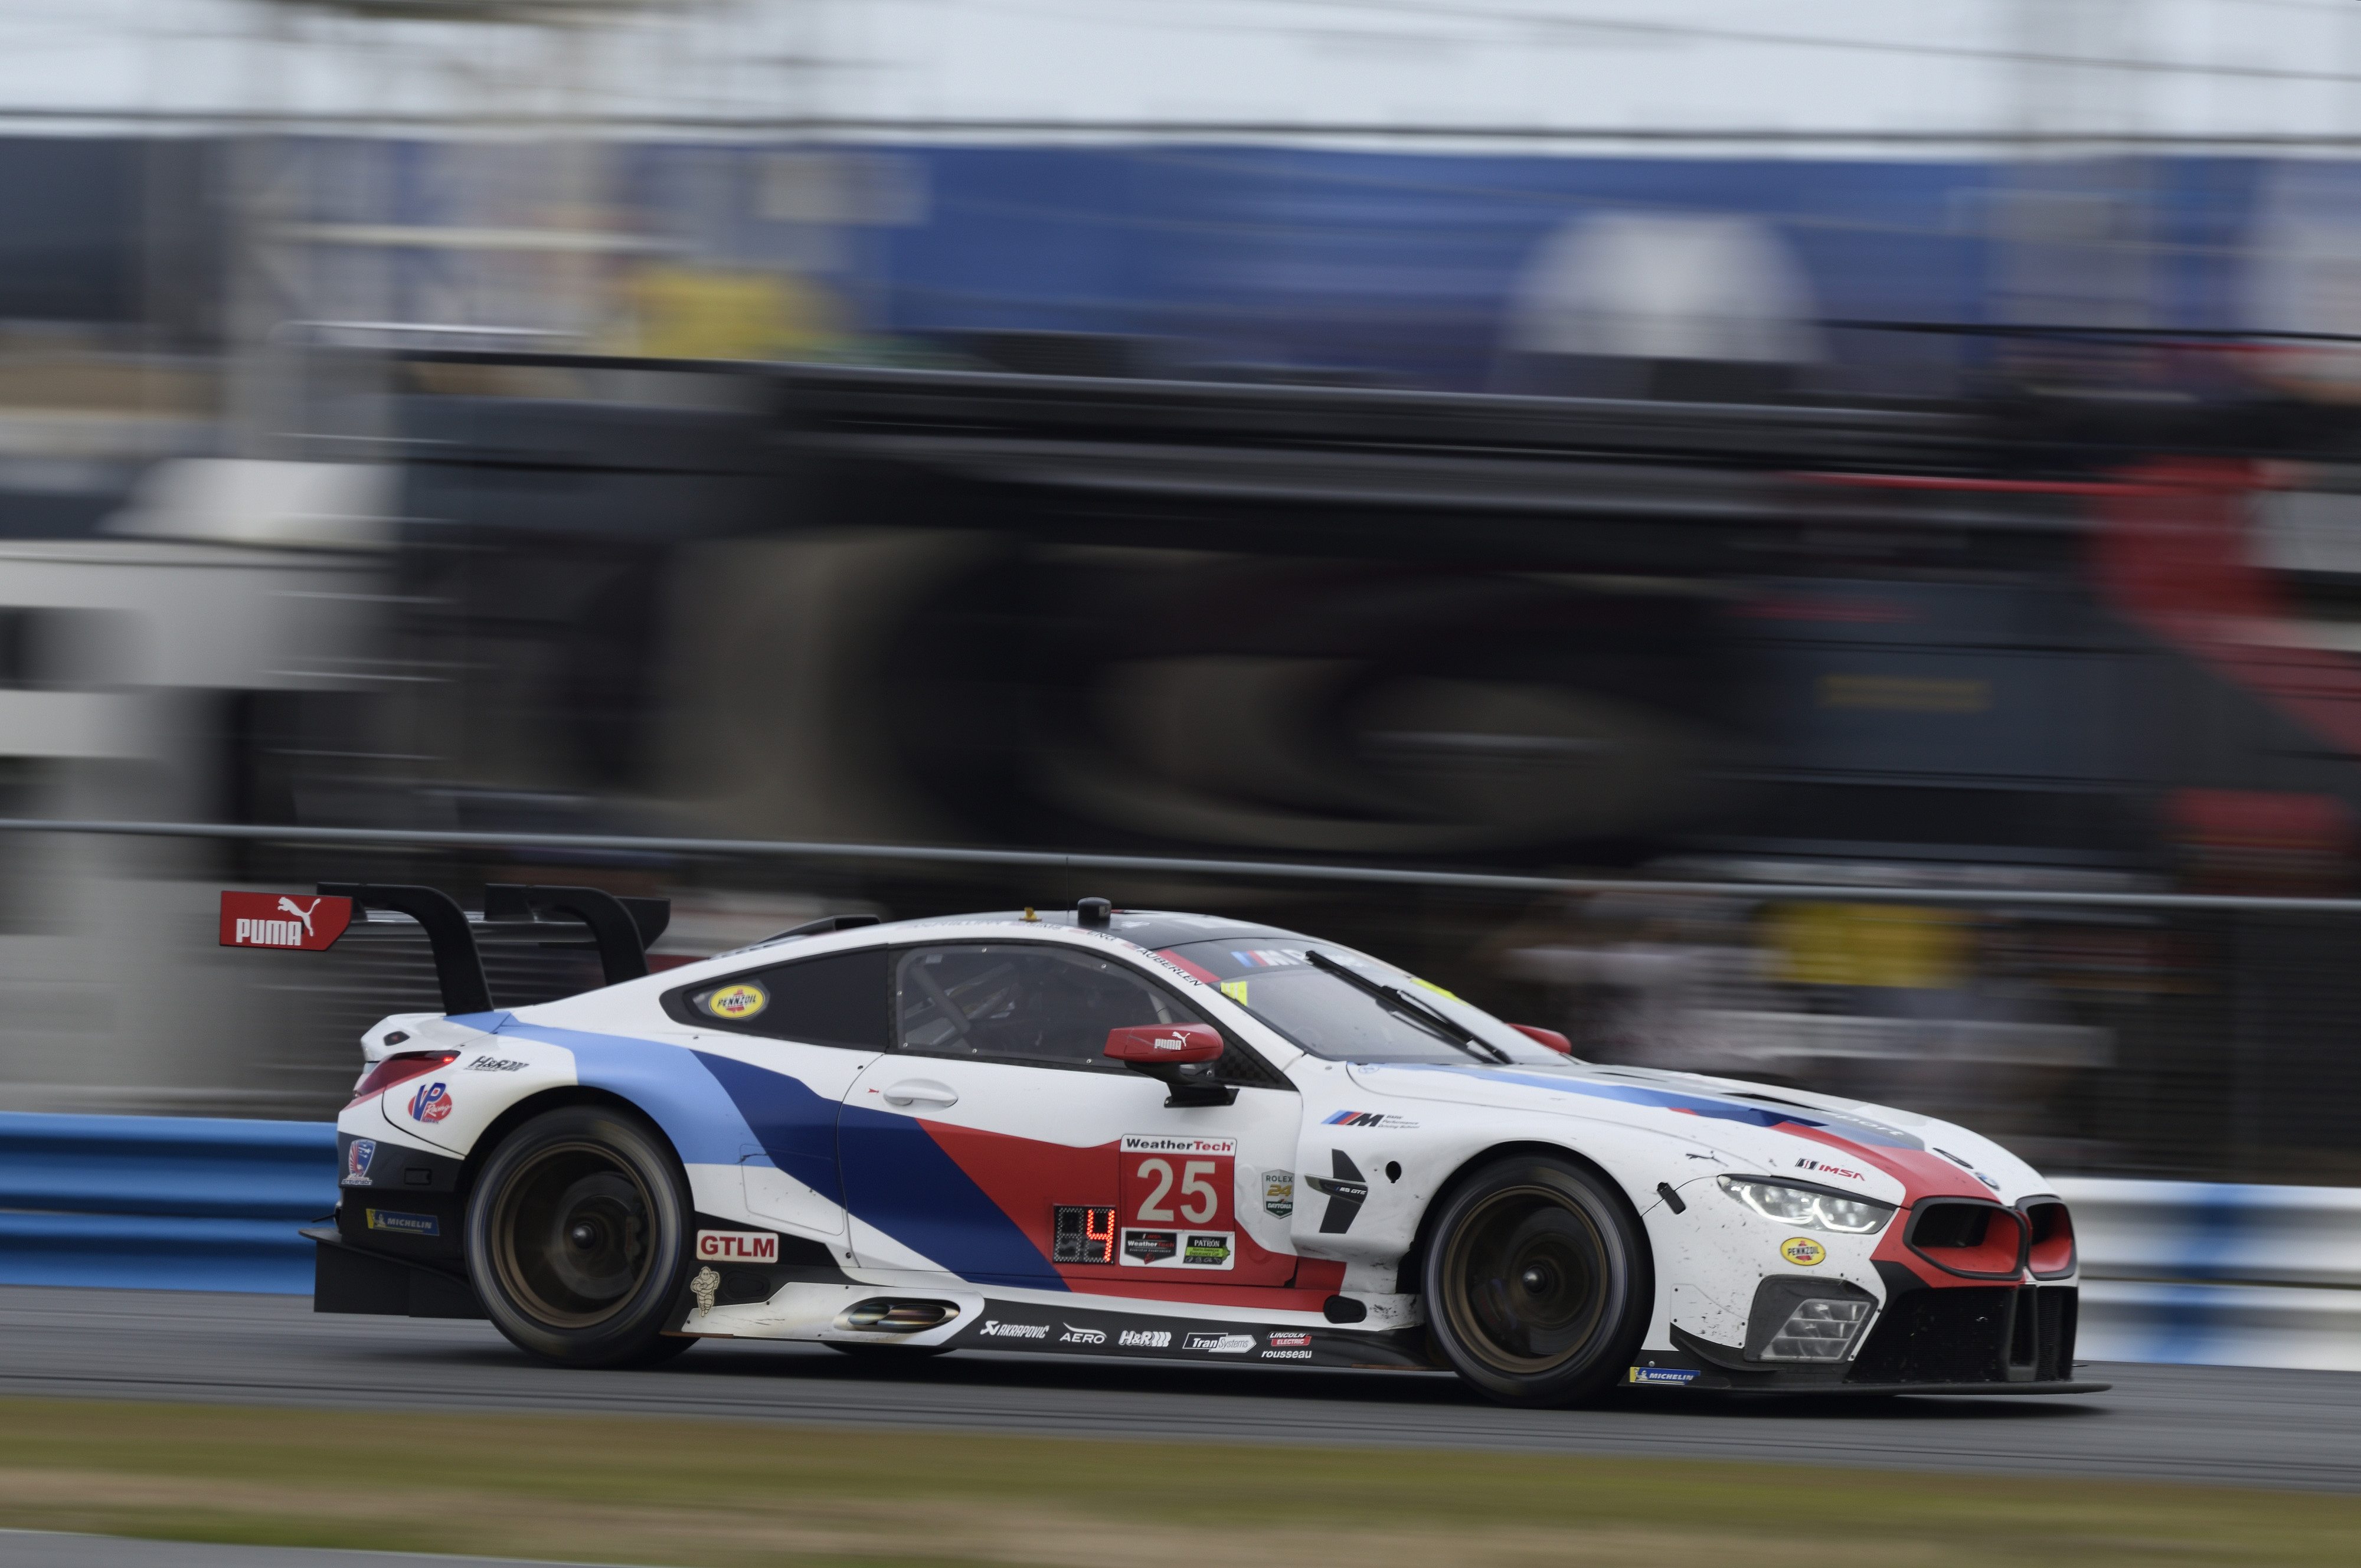 bmw m8 gte masters debut race in daytona motor sports newswire. Black Bedroom Furniture Sets. Home Design Ideas